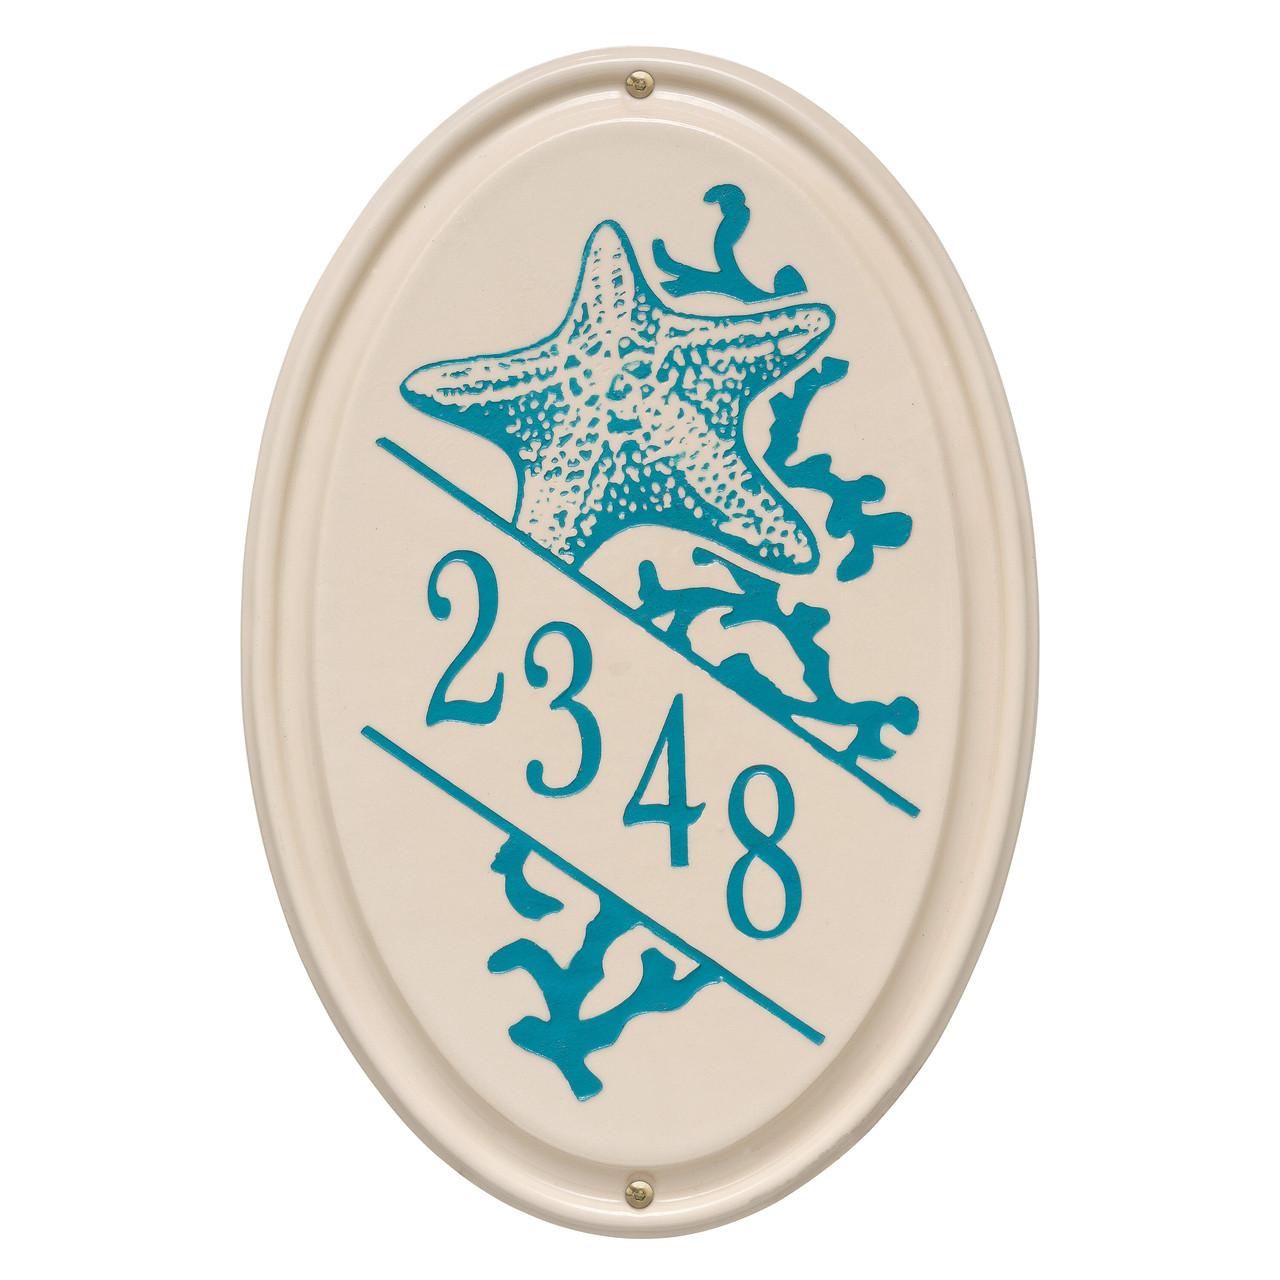 Personalized Oval Ceramic Address Plaque with Star Fish - One Line